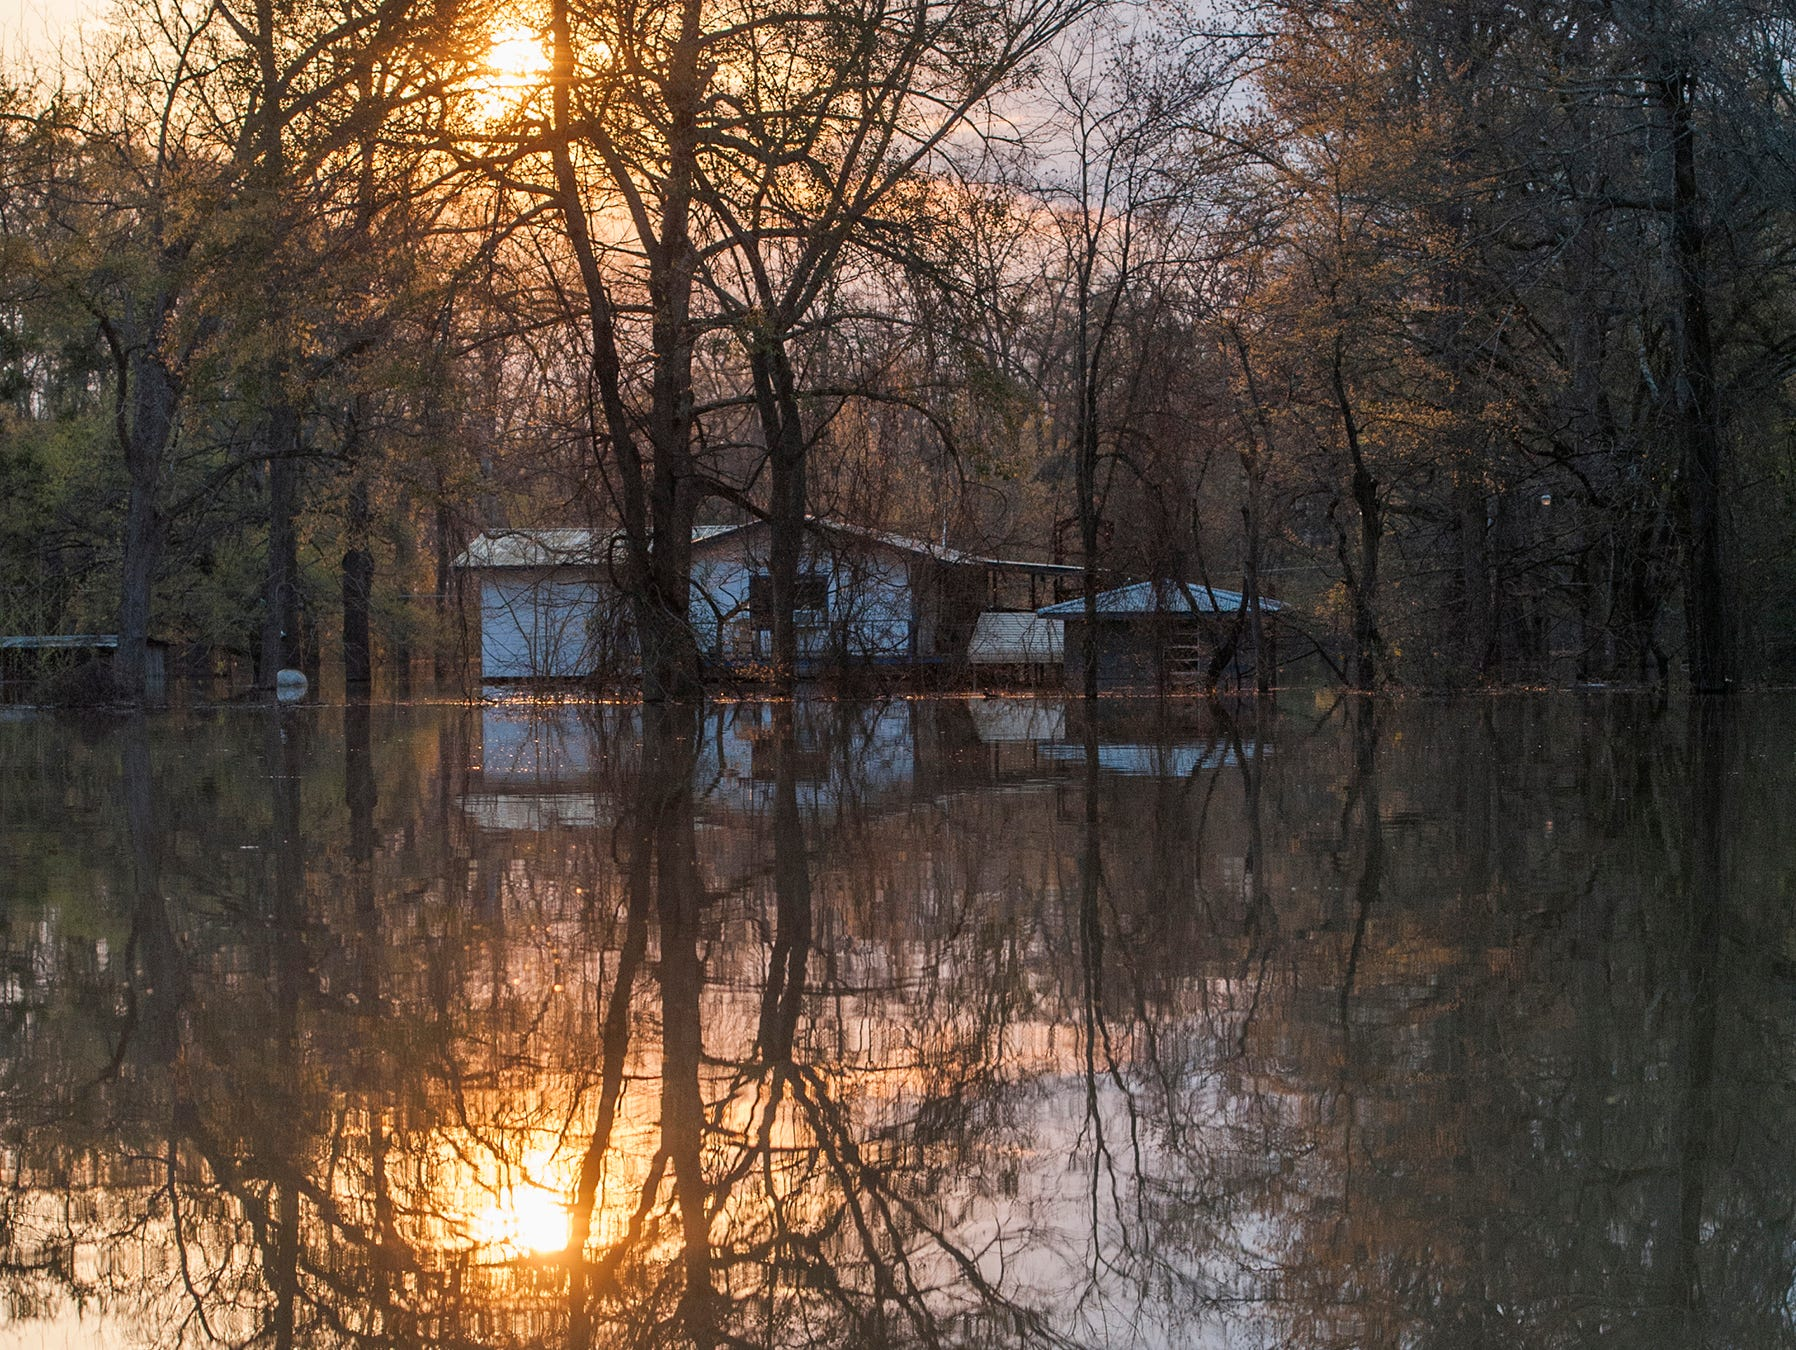 The sun sets on the waters of the overflowing Yazoo River filling the streets of the Chickasaw subdivision in Vicksburg on March 19, 2019.